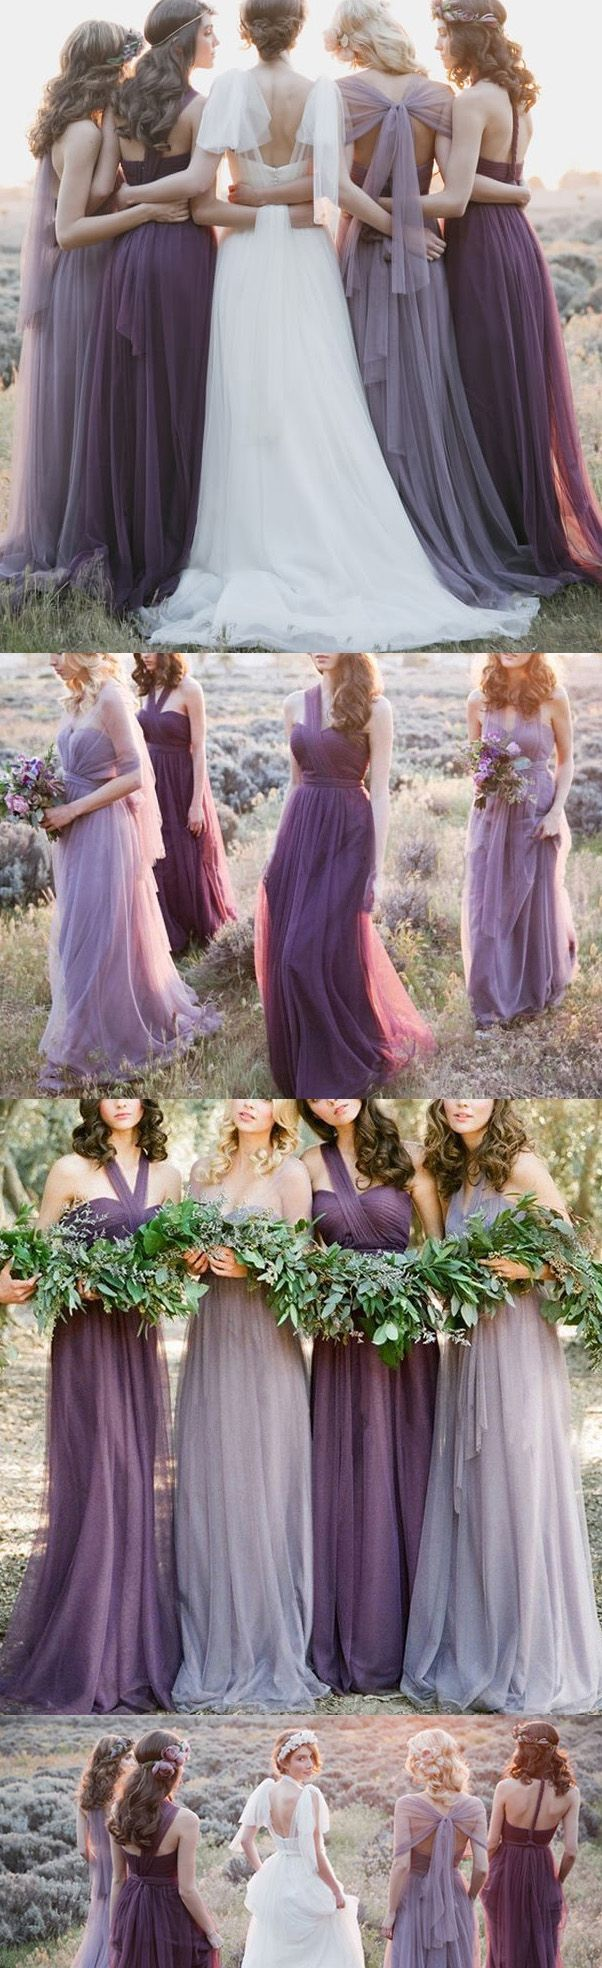 Best 25 halter bridesmaid dresses ideas on pinterest champagne amazing halter bridesmaid dresses with ruching detail sweetheart bridesmaid dress with sweep train tulle ombrellifo Choice Image